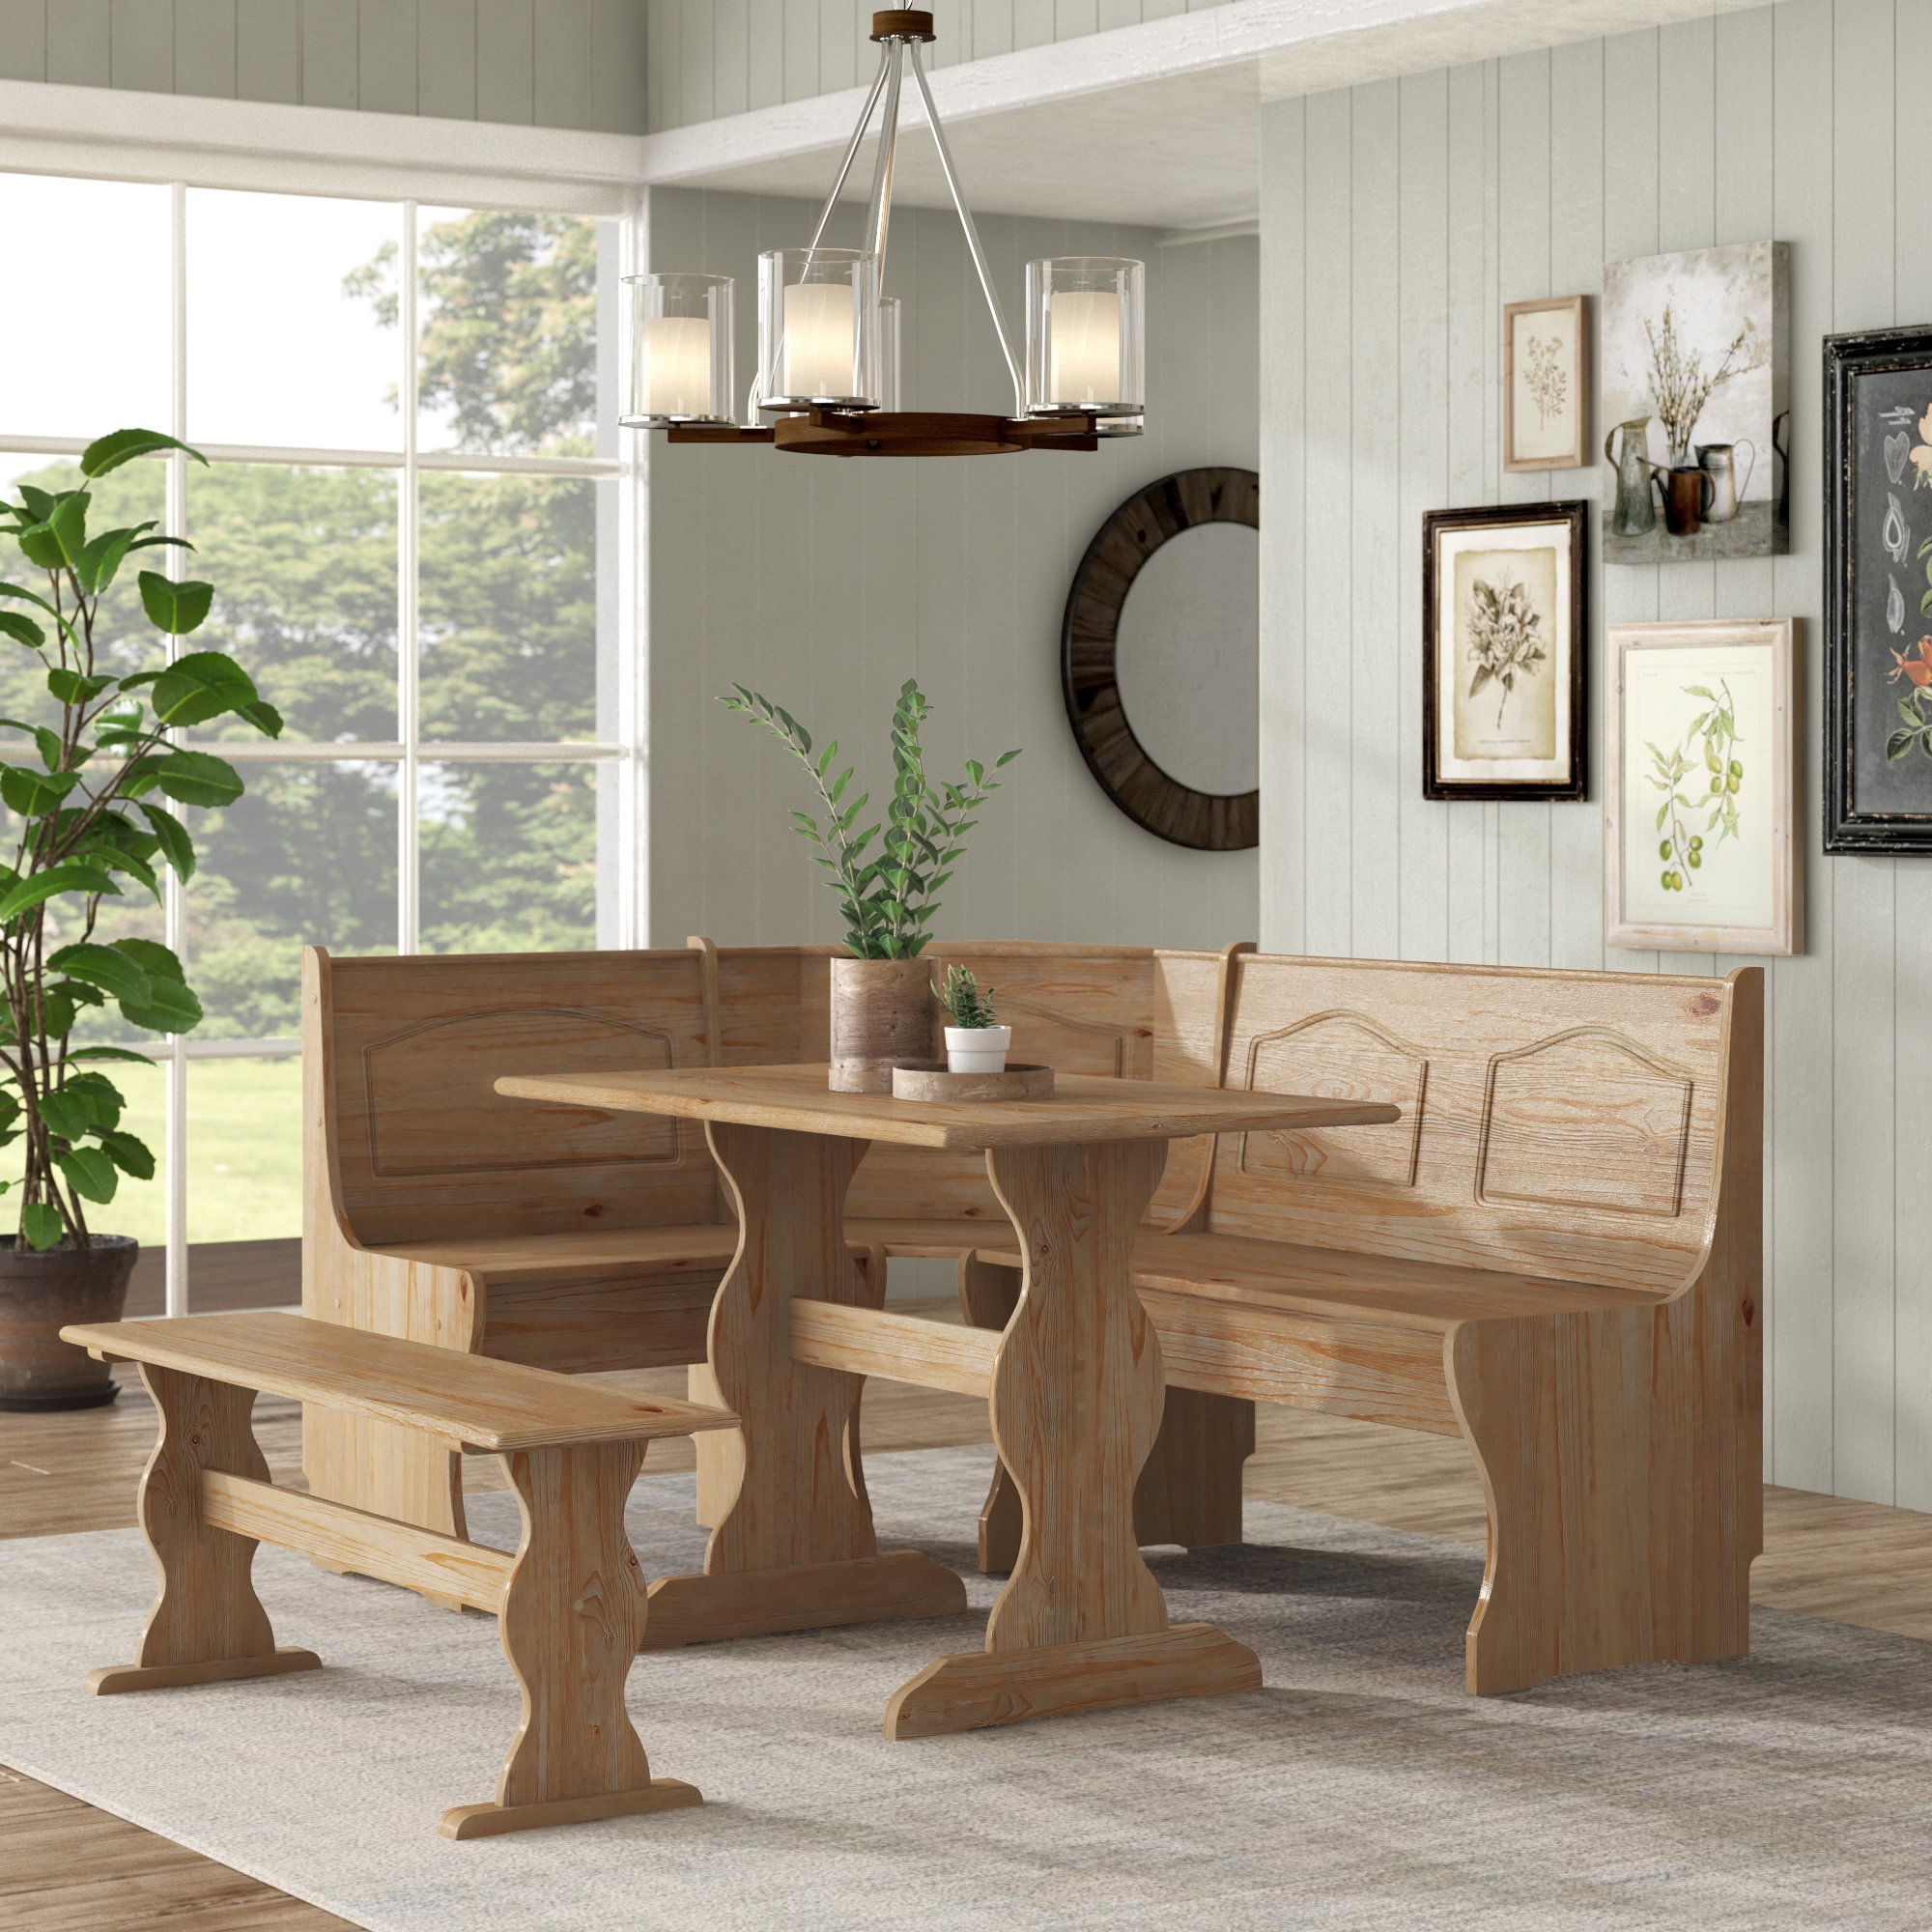 3 Piece Breakfast Dining Sets With Most Recently Released August Grove Padstow 3 Piece Breakfast Nook Dining Set & Reviews (View 22 of 25)